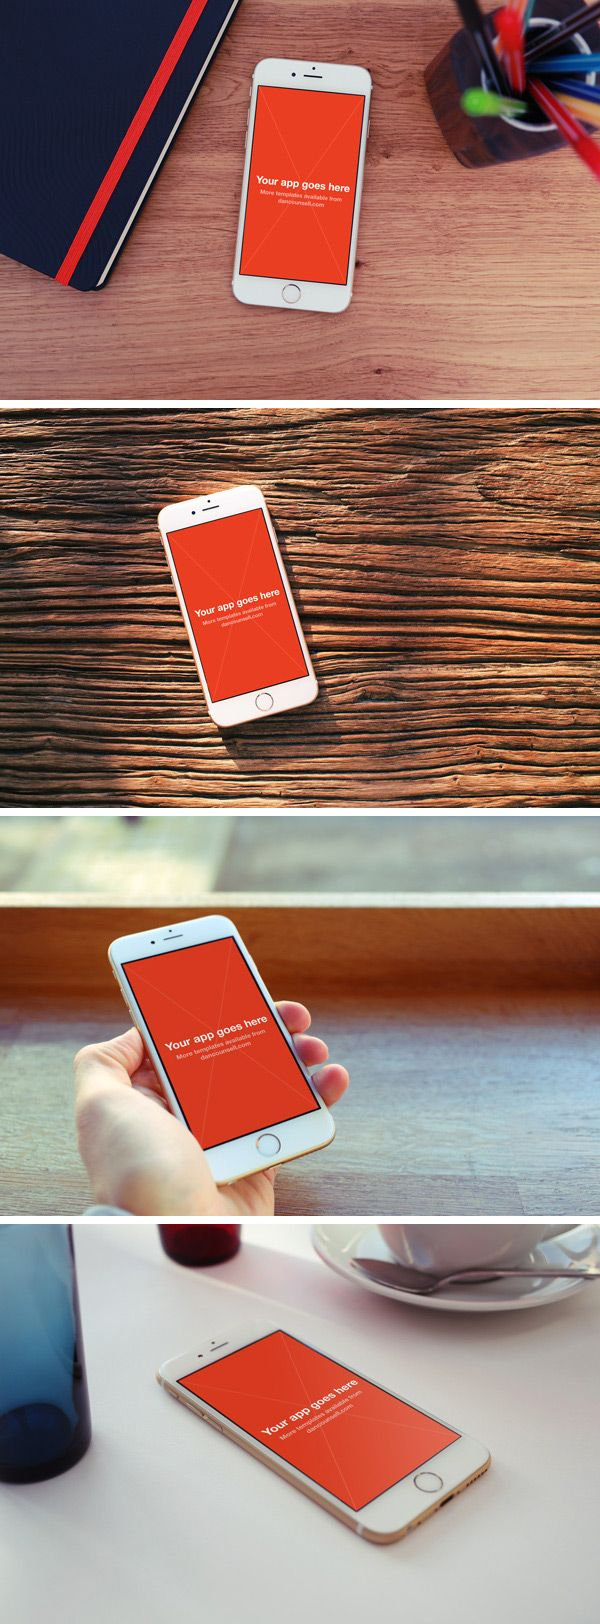 4 iPhone 6 Photo MockUps